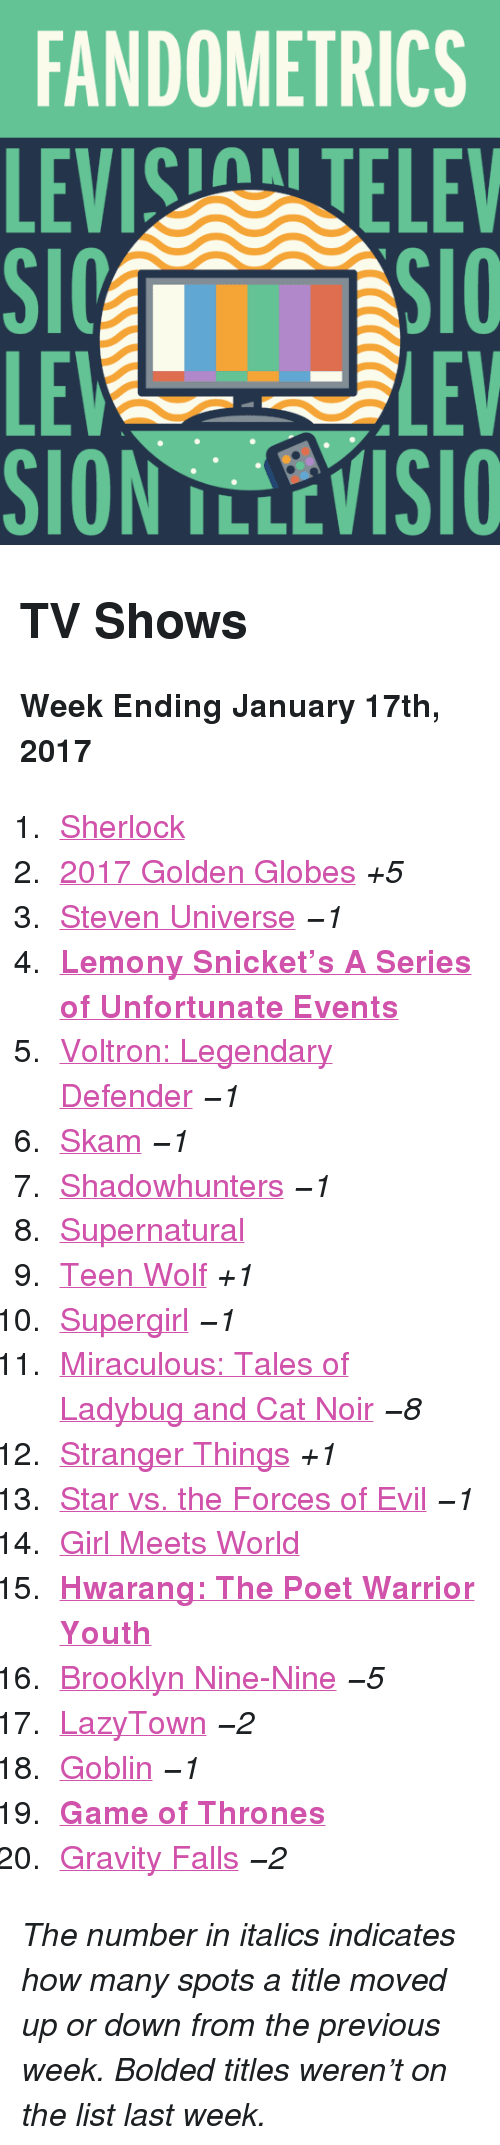 """Golden Globes: FANDOMETRICS  LEVIS TELEV  LE  SION TLLEVISIO  LEV <h2>TV Shows</h2><p><b>Week Ending January 17th, 2017</b></p><ol><li><a href=""""http://www.tumblr.com/search/sherlock"""">Sherlock</a></li>  <li><a href=""""http://www.tumblr.com/search/golden%20globes"""">2017 Golden Globes</a><i>+5</i></li>  <li><a href=""""http://www.tumblr.com/search/steven%20universe"""">Steven Universe</a><i><i>−1</i></i></li>  <li><a href=""""http://www.tumblr.com/search/a%20series%20of%20unfortunate%20events""""><b>Lemony Snicket&rsquo;s A Series of Unfortunate Events</b></a></li>  <li><a href=""""http://www.tumblr.com/search/voltron"""">Voltron: Legendary Defender</a><i><i>−1</i></i></li>  <li><a href=""""http://www.tumblr.com/search/skam"""">Skam</a><i><i>−1</i></i></li>  <li><a href=""""http://www.tumblr.com/search/shadowhunters"""">Shadowhunters</a><i><i>−1</i></i></li>  <li><a href=""""http://www.tumblr.com/search/supernatural"""">Supernatural</a></li>  <li><a href=""""http://www.tumblr.com/search/teen%20wolf"""">Teen Wolf</a><i>+1</i></li>  <li><a href=""""http://www.tumblr.com/search/supergirl"""">Supergirl</a><i><i>−1</i></i></li>  <li><a href=""""http://www.tumblr.com/search/miraculous%20ladybug"""">Miraculous: Tales of Ladybug and Cat Noir</a><i><i>−8</i></i></li>  <li><a href=""""http://www.tumblr.com/search/stranger%20things"""">Stranger Things</a><i>+1</i></li>  <li><a href=""""http://www.tumblr.com/search/star%20vs%20the%20forces%20of%20evil"""">Star vs. the Forces of Evil</a><i><i>−1</i></i></li>  <li><a href=""""http://www.tumblr.com/search/girl%20meets%20world"""">Girl Meets World</a></li>  <li><a href=""""http://www.tumblr.com/search/hwarang""""><b>Hwarang: The Poet Warrior Youth</b></a></li>  <li><a href=""""http://www.tumblr.com/search/brooklyn%20nine%20nine"""">Brooklyn Nine-Nine</a><i><i>−5</i></i></li>  <li><a href=""""http://www.tumblr.com/search/lazytown"""">LazyTown</a><i><i>−2</i></i></li>  <li><a href=""""http://www.tumblr.com/search/goblin"""">Goblin</a><i><i>−1</i></i></li>  <li><a href=""""http://www.tumblr.com/search/game%20of%20thrones""""><b>Game of Thro"""